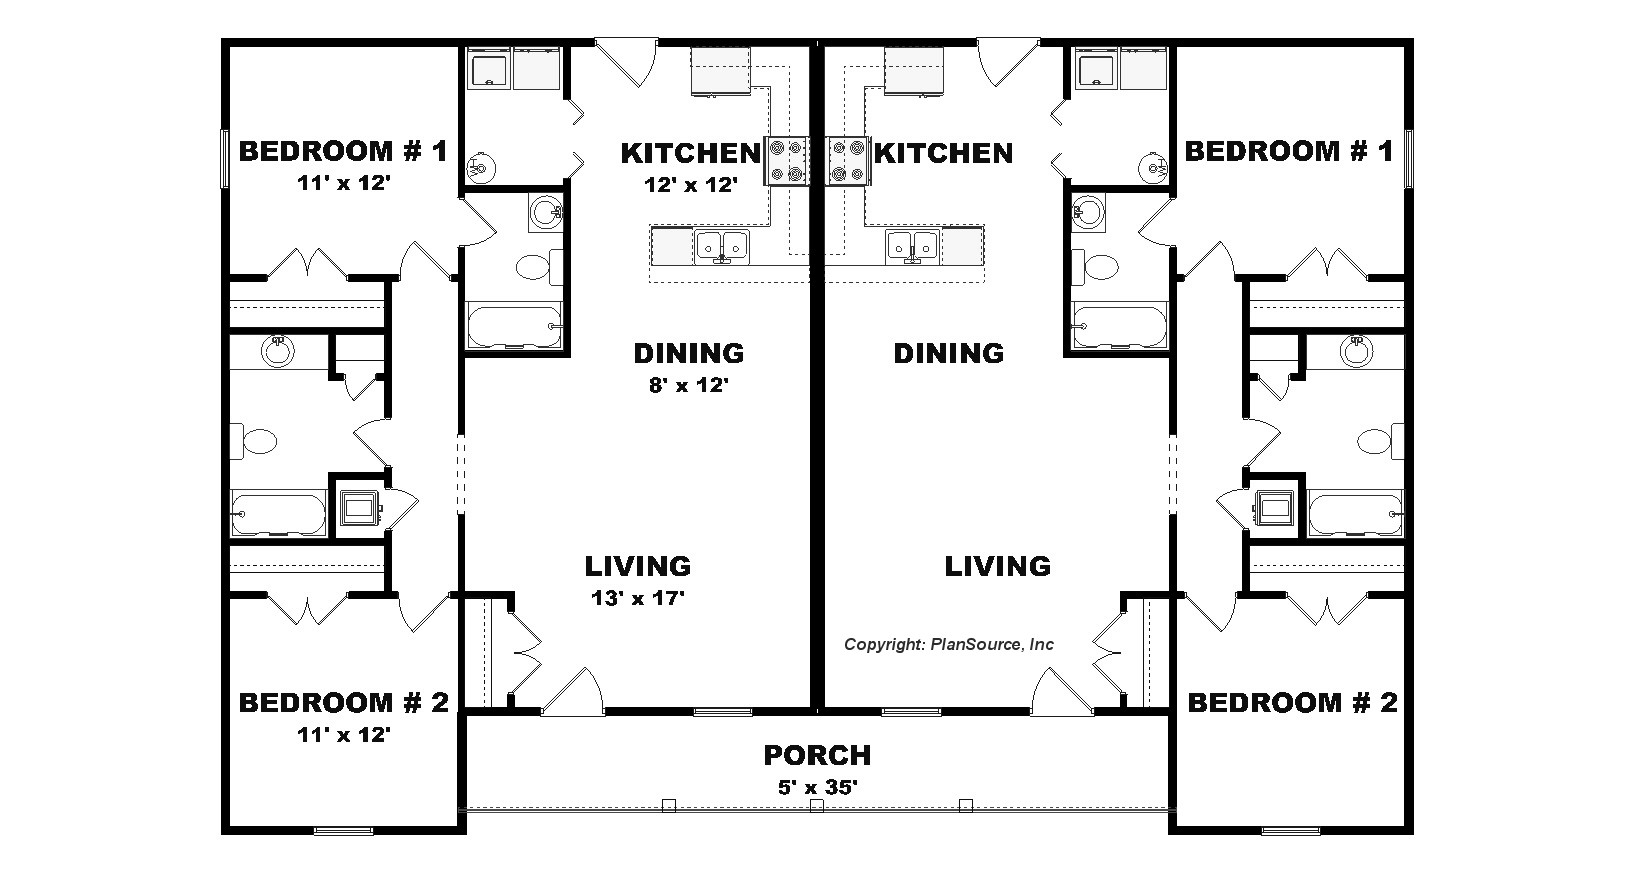 wonderful 4 plex apartment plans #6: Awesome Apartment Plans 4 Plex #2: J0201-13-4_Ad_copy.jpg